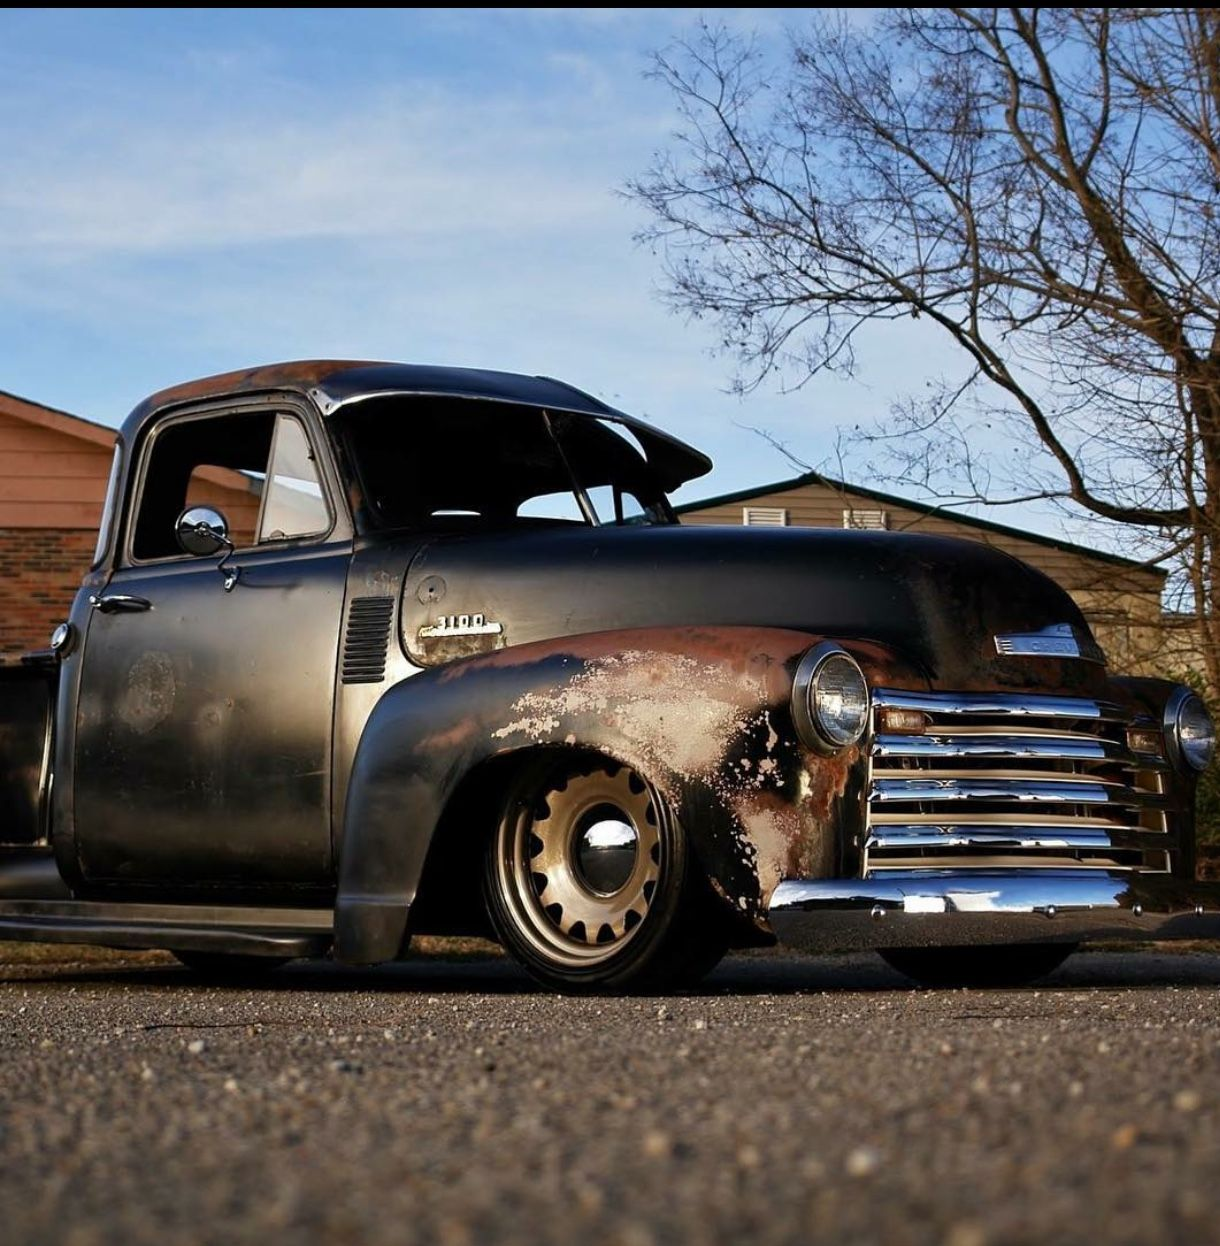 Pin by Marita Singletary on Old Rides | Pinterest | Rats, Cars and ...